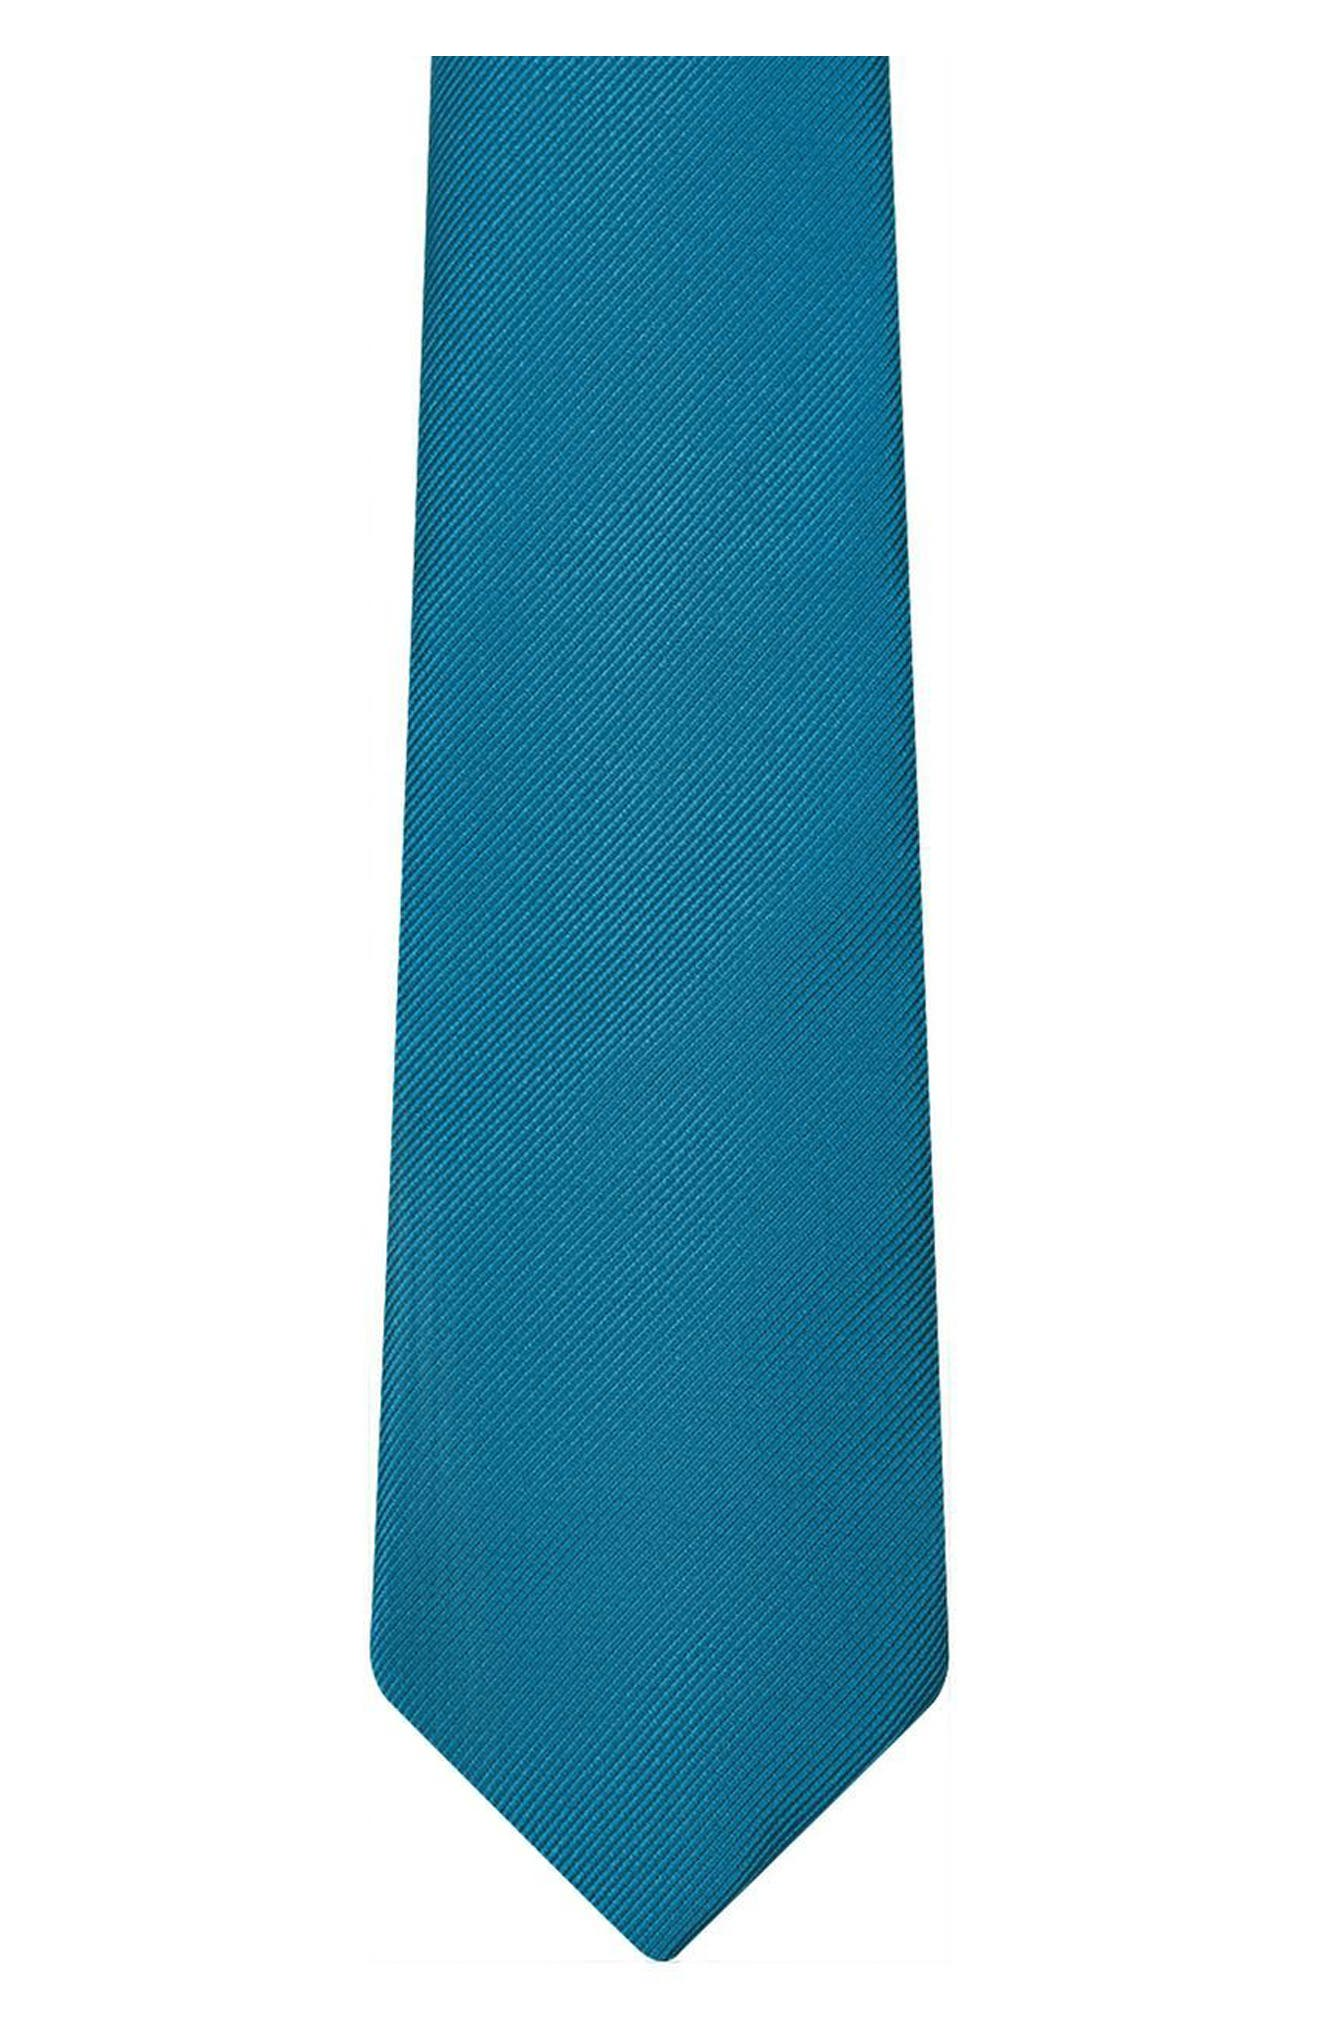 Woven Tie,                             Alternate thumbnail 2, color,                             Teal